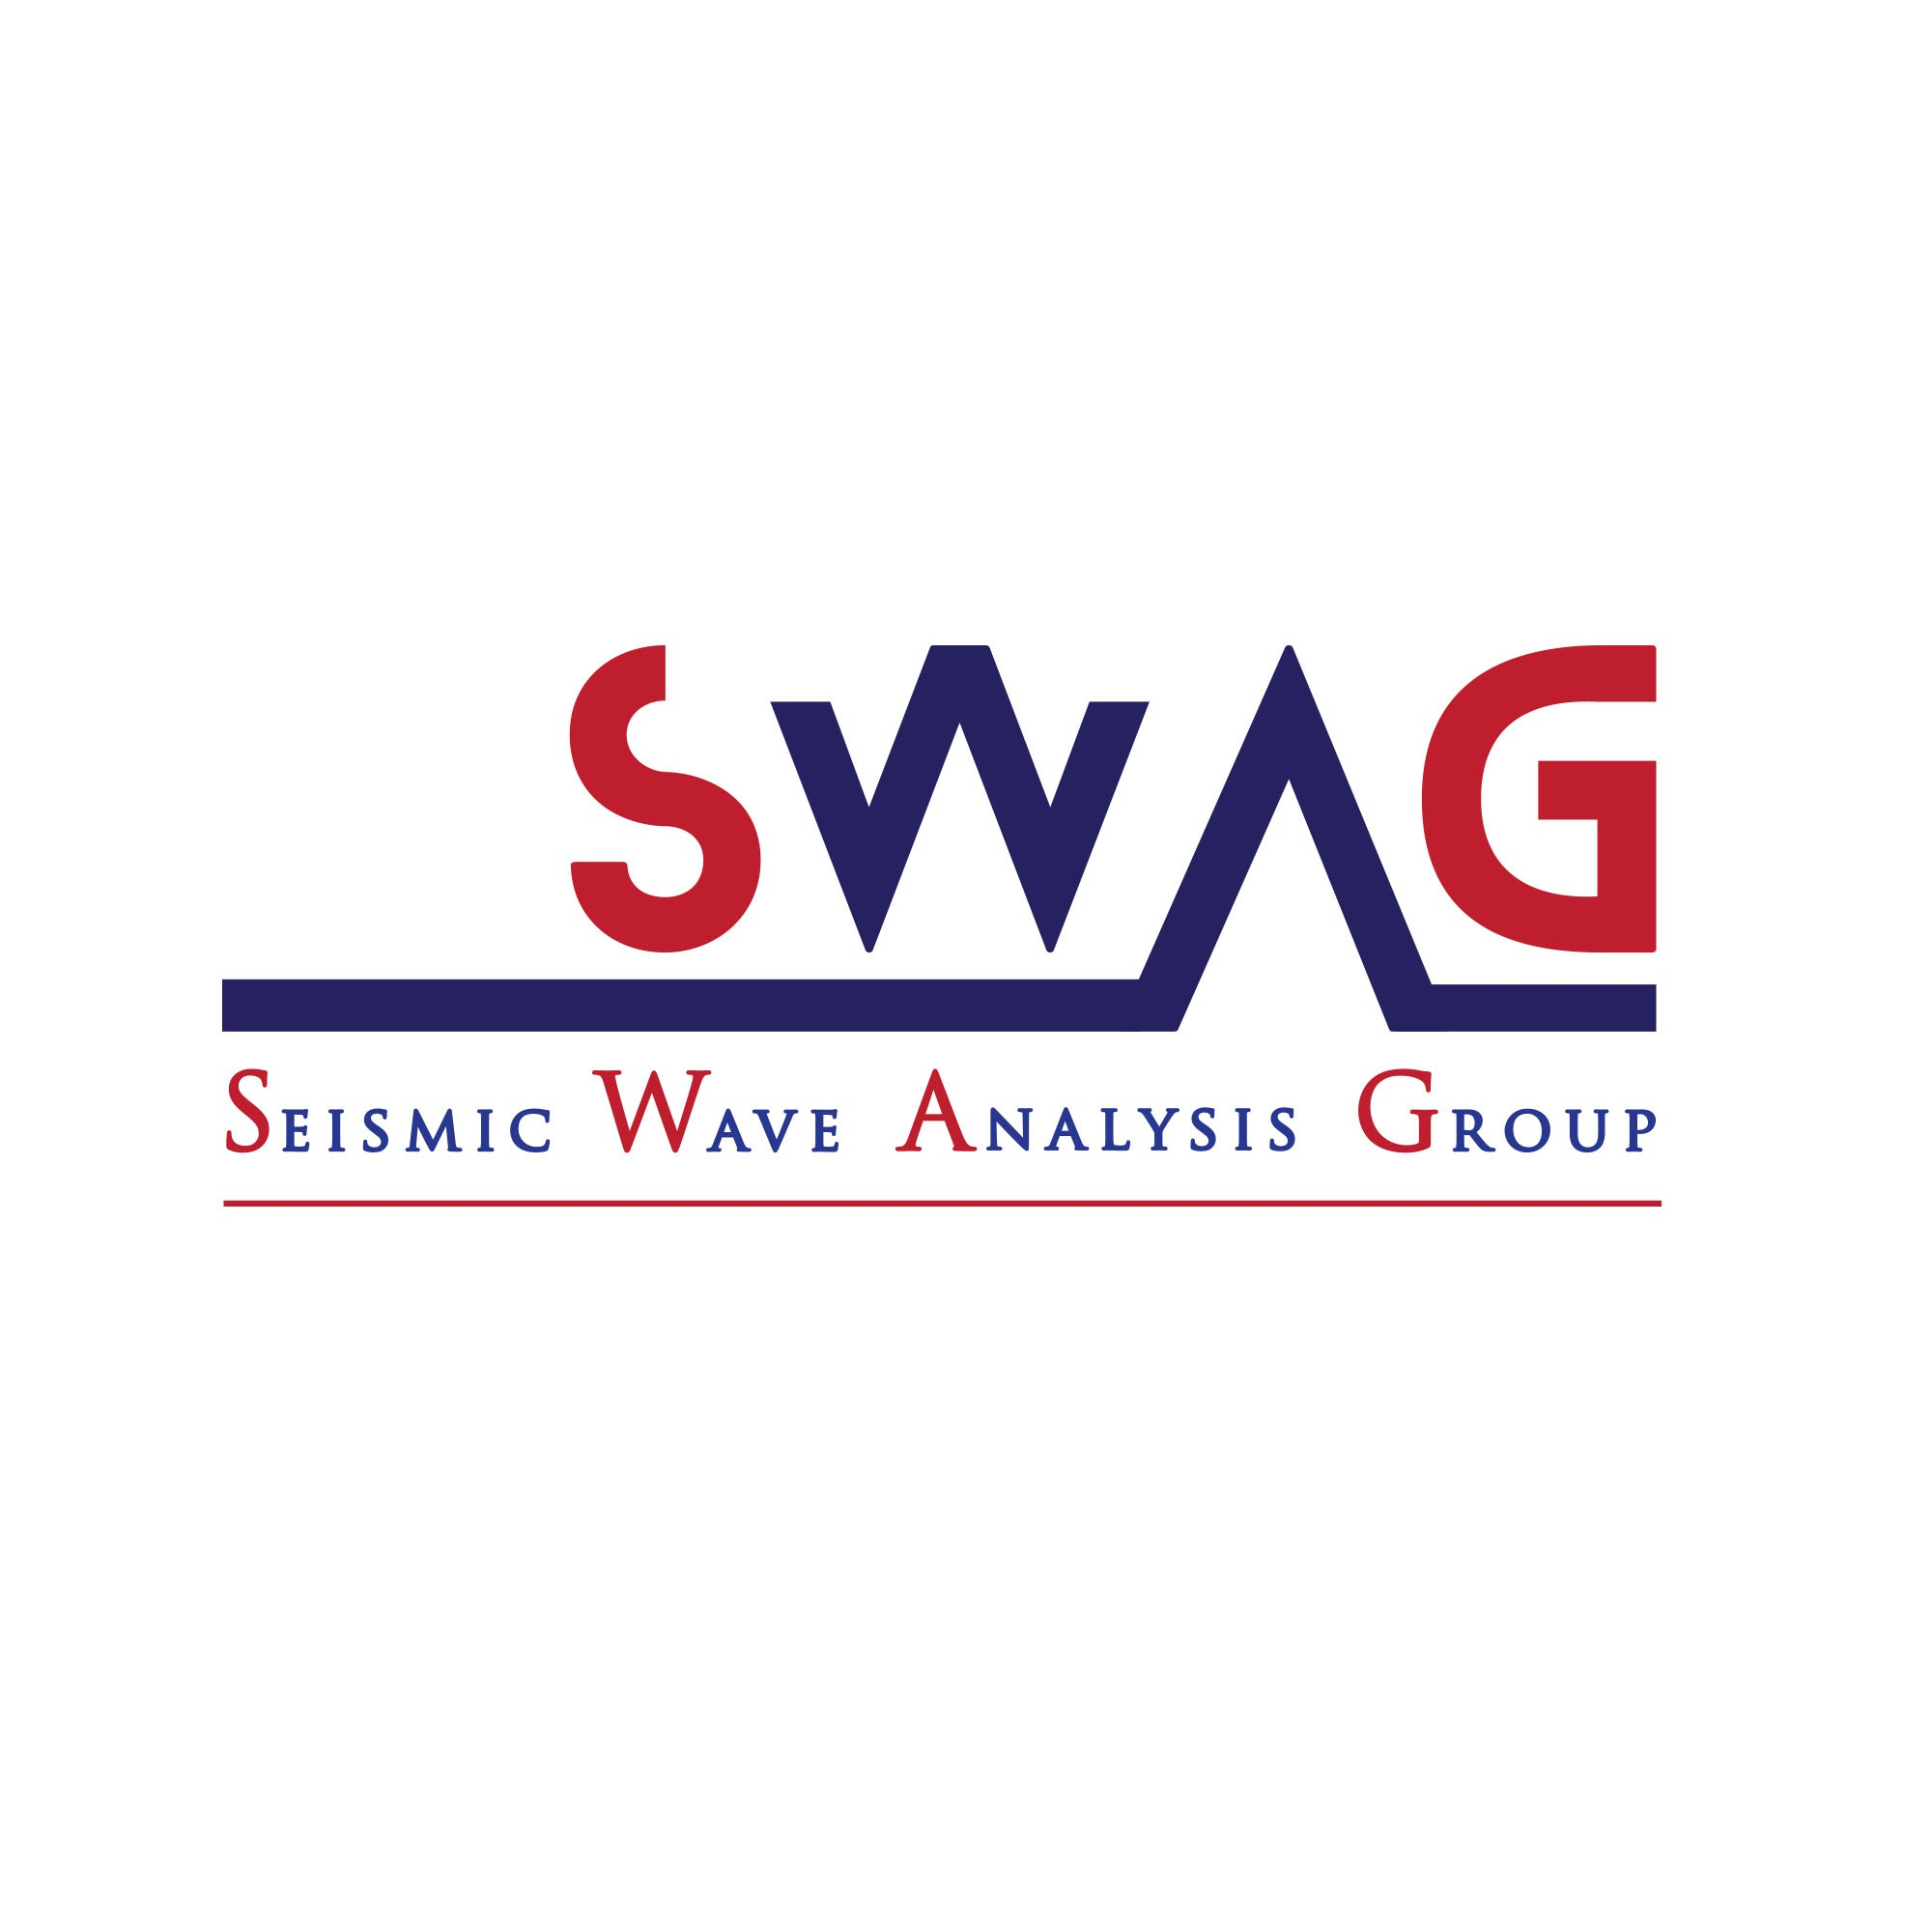 A logo for the Seismic Wave Analysis Group